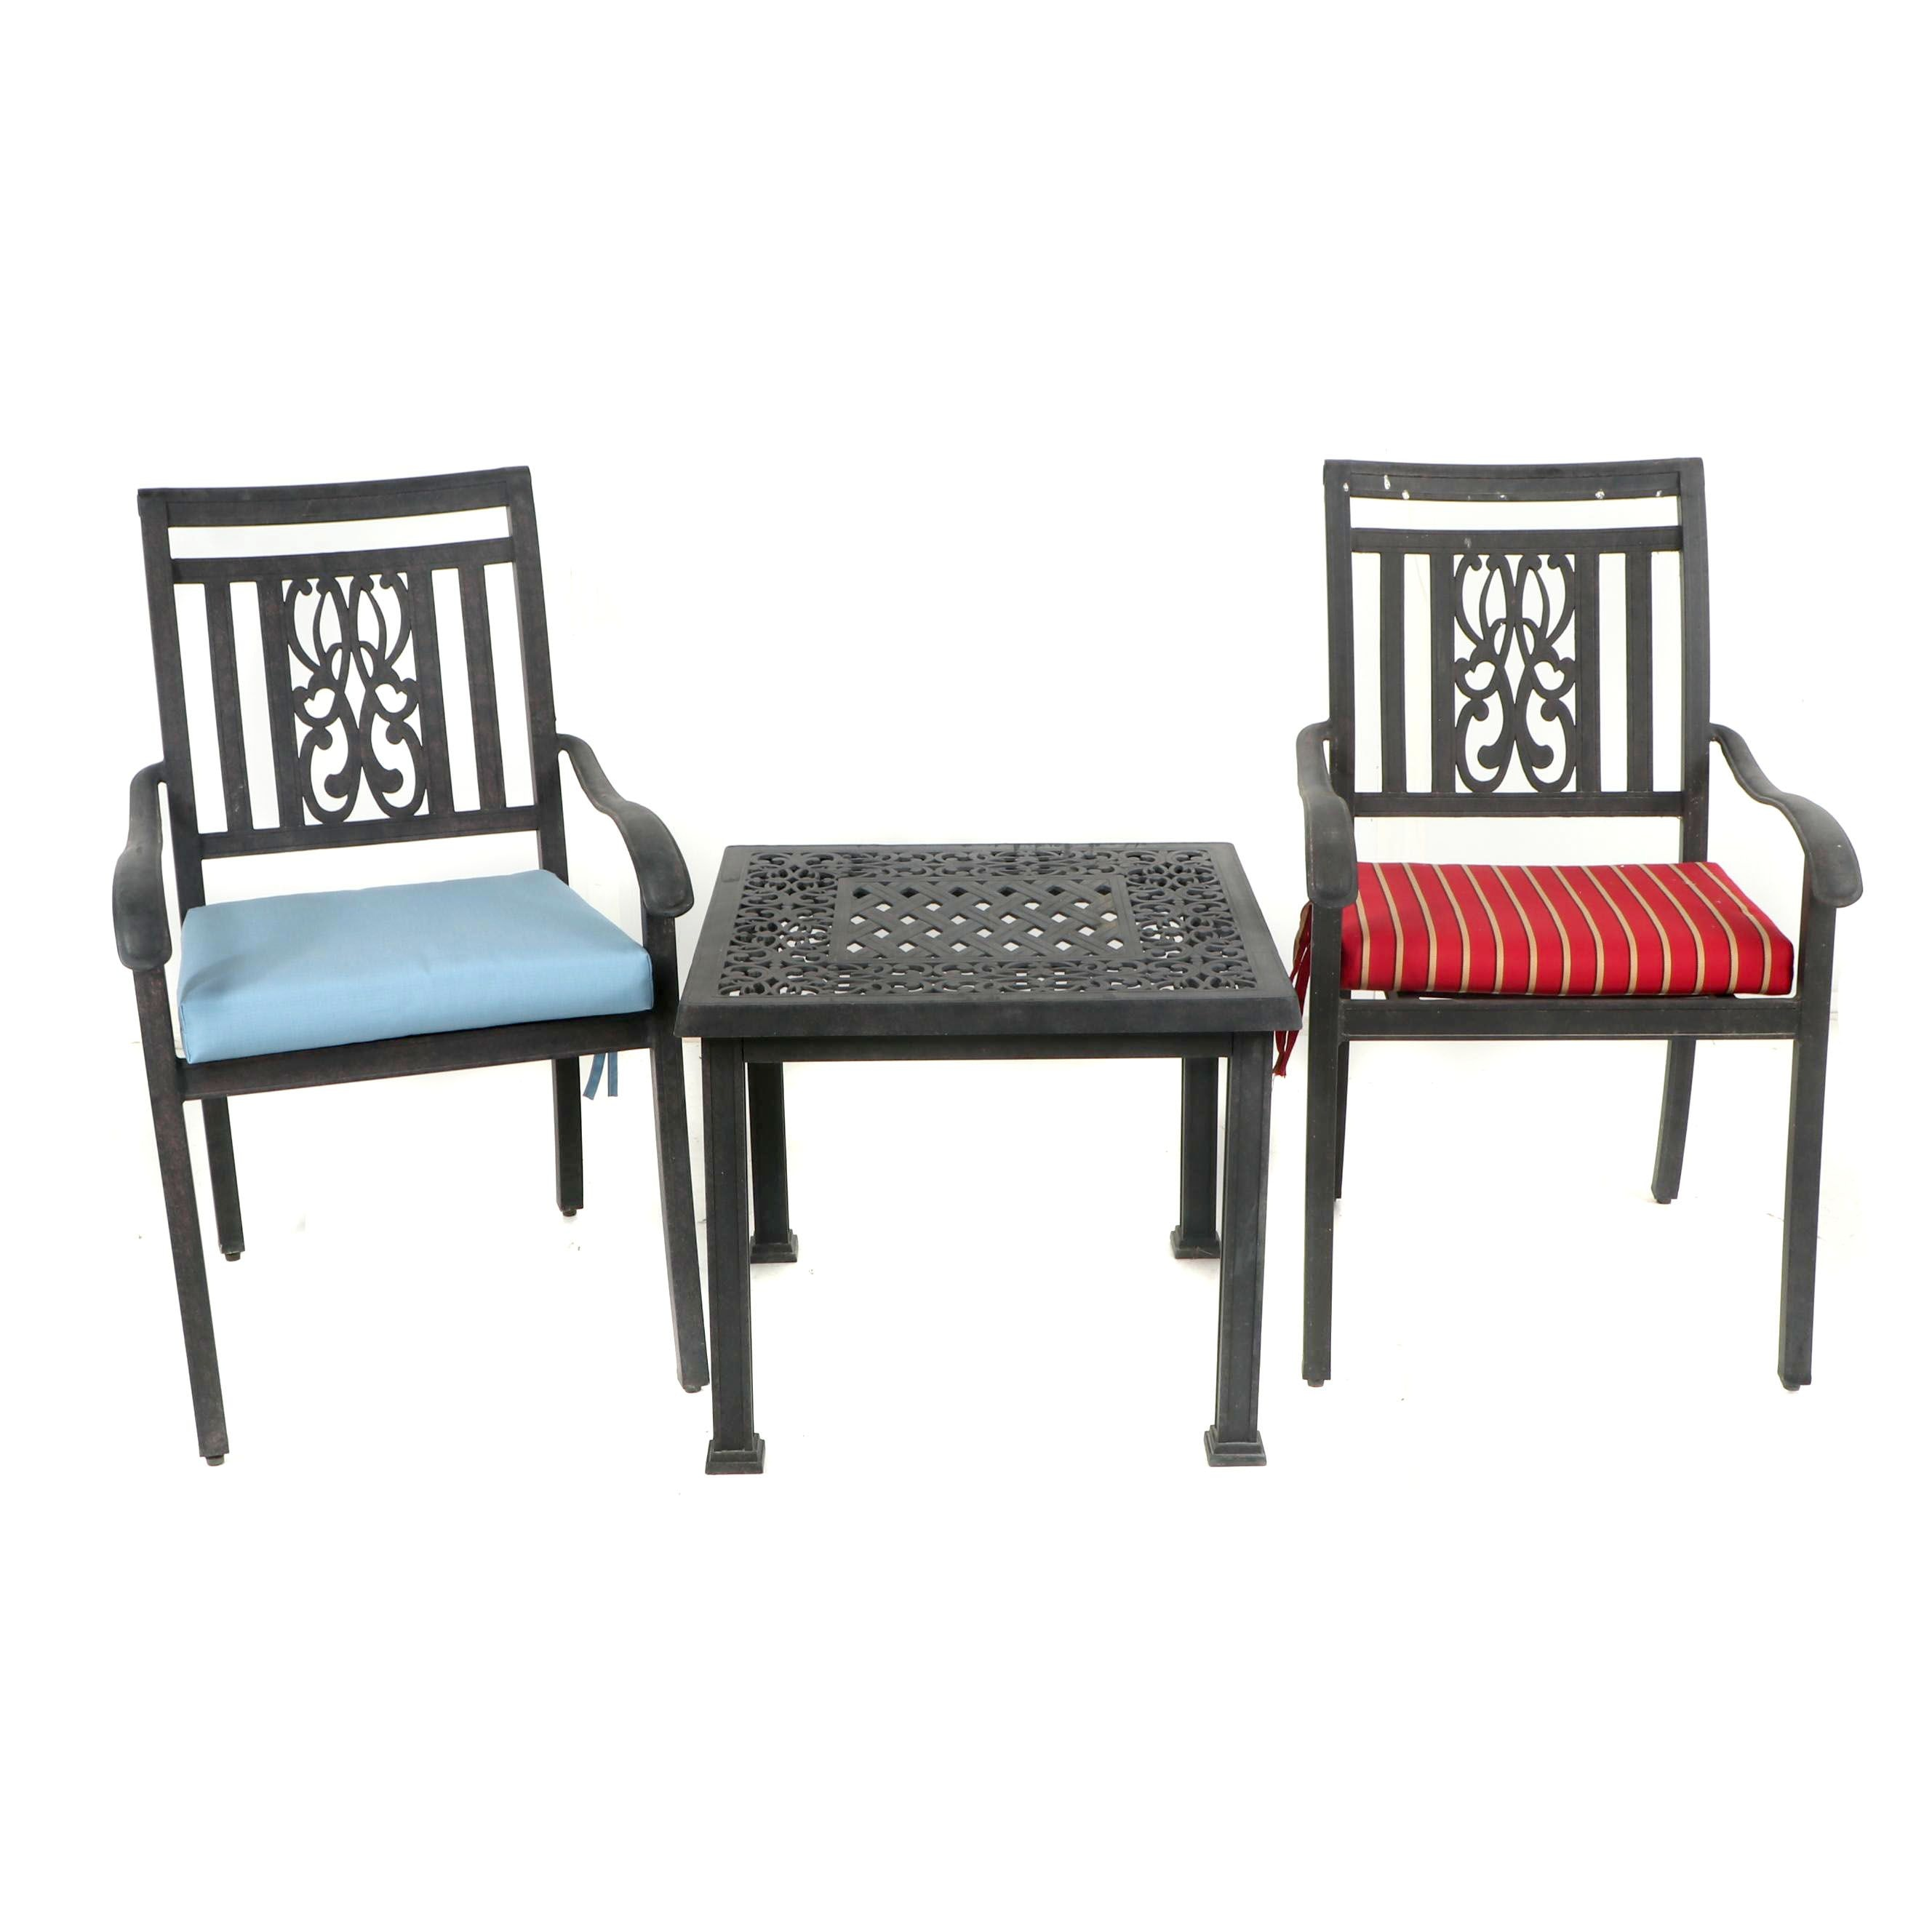 Metal Patio Side Table with Armchairs, 21st Century